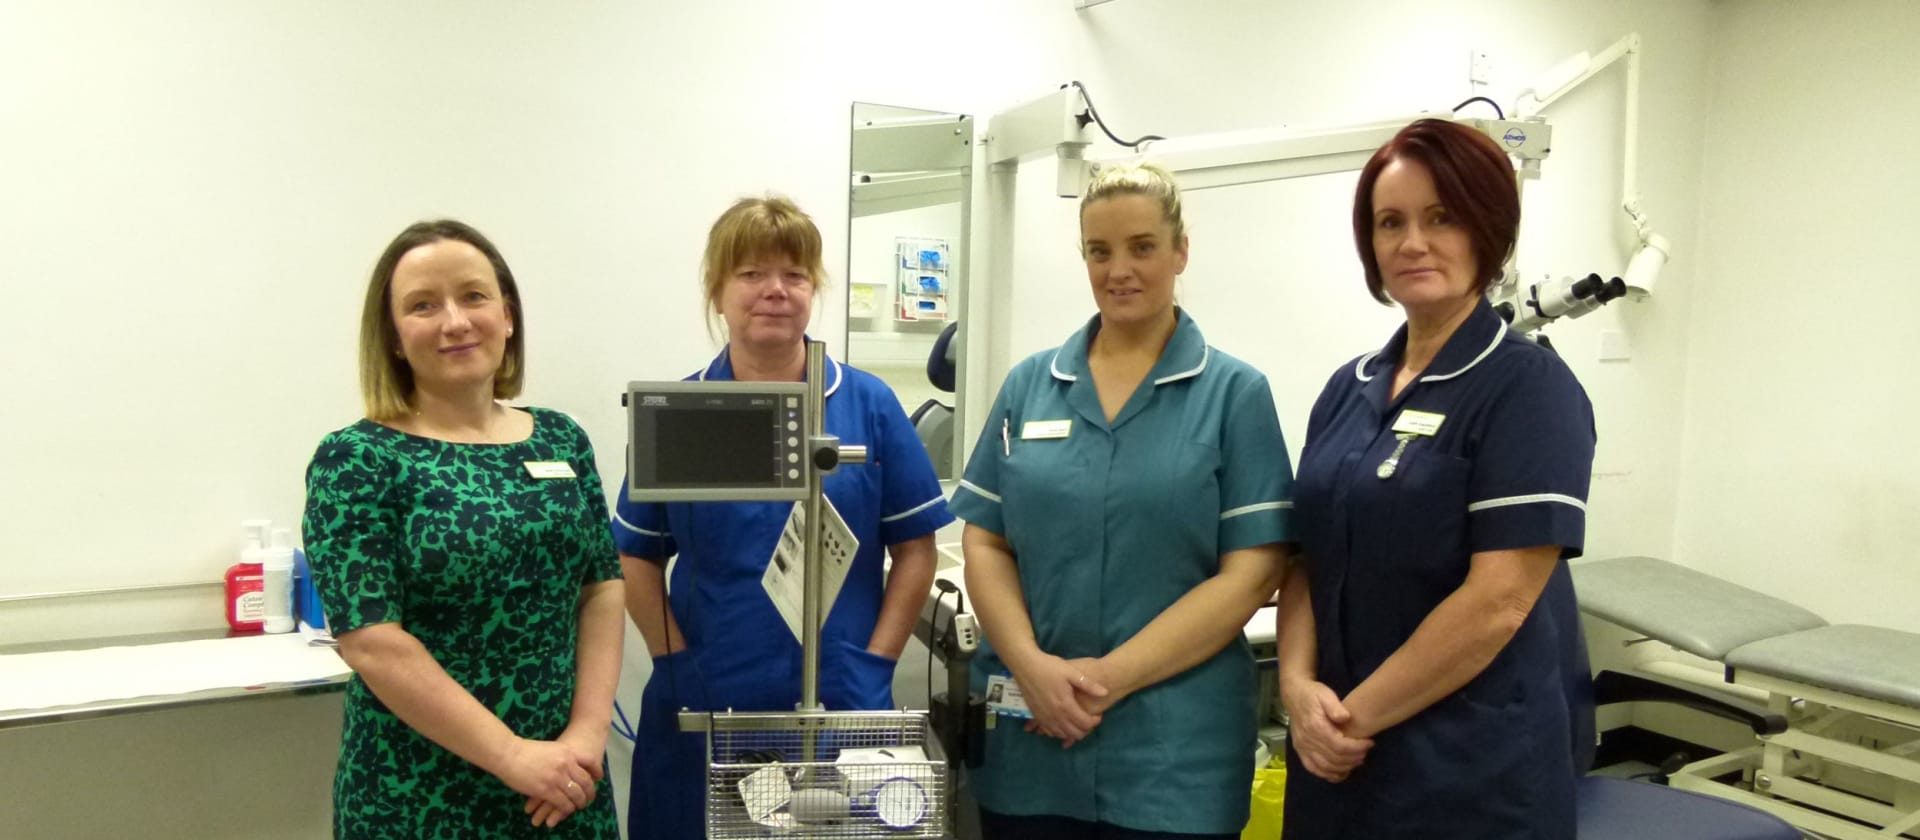 New technology transforms care for patients at Leeds Children's Hospital